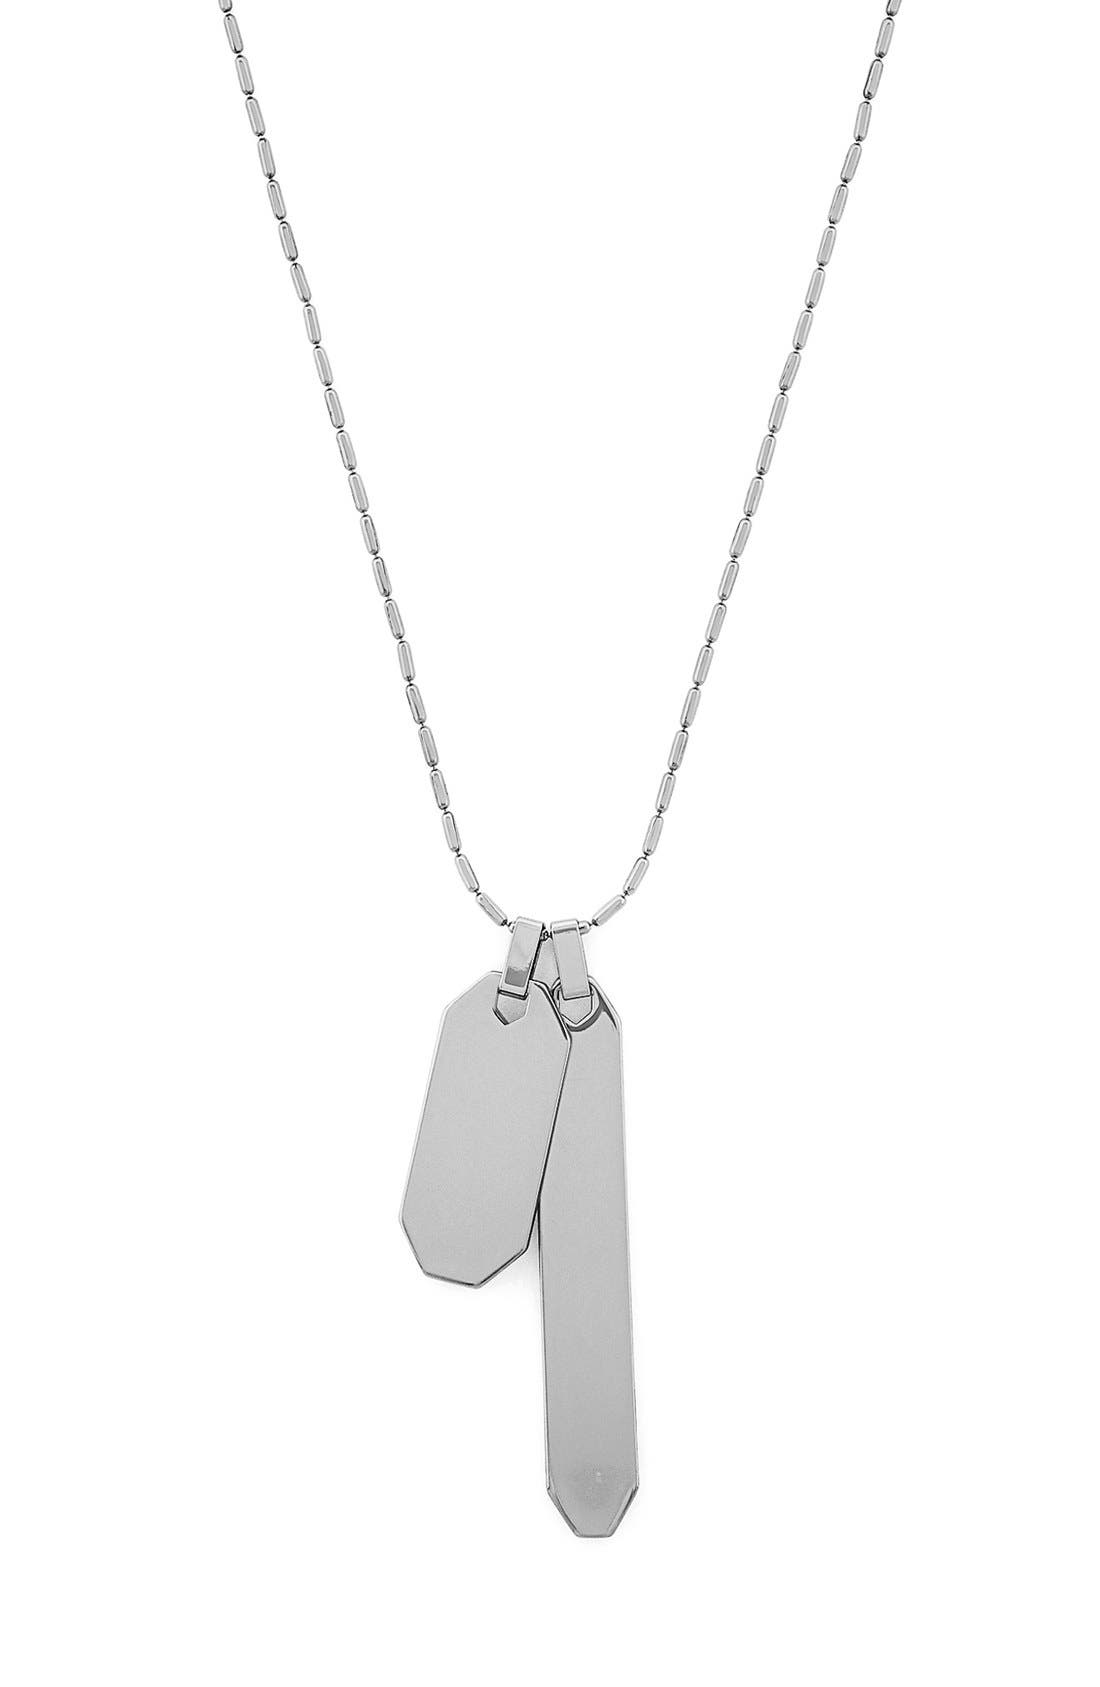 Main Image - Vince Camuto Double Tag Pendant Necklace